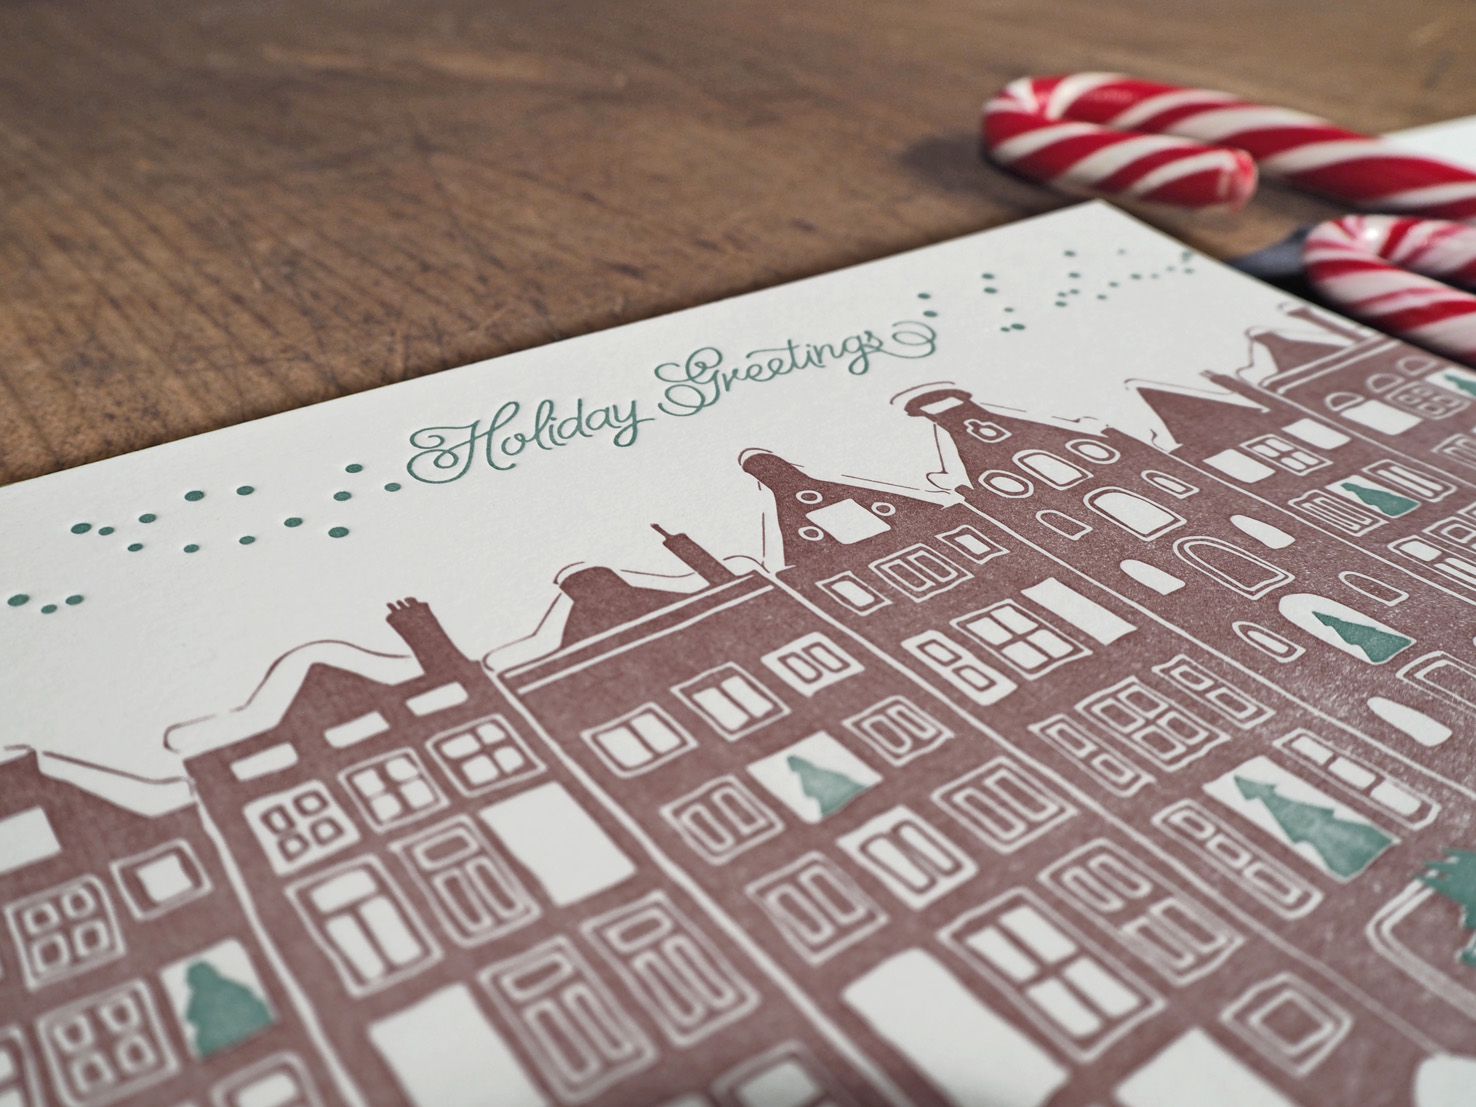 CarissimoLetterpress_xmas2015_Holiday Greetings_Photocredits Carissimo Letterpress_web